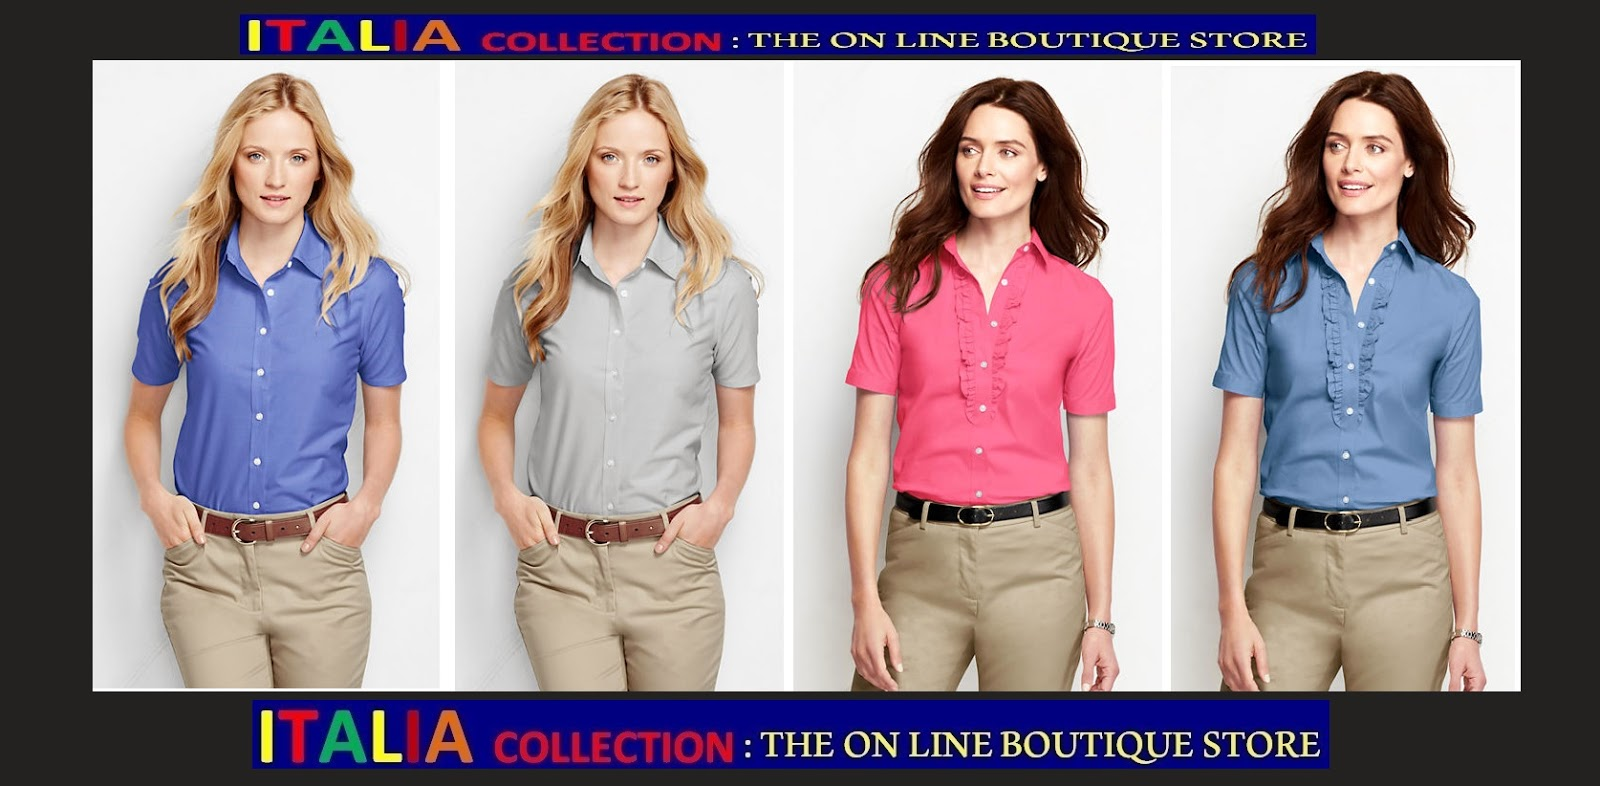 imagenes de camisas para mujeres - Fruit of the Loom Camisa oxford manga larga para mujer